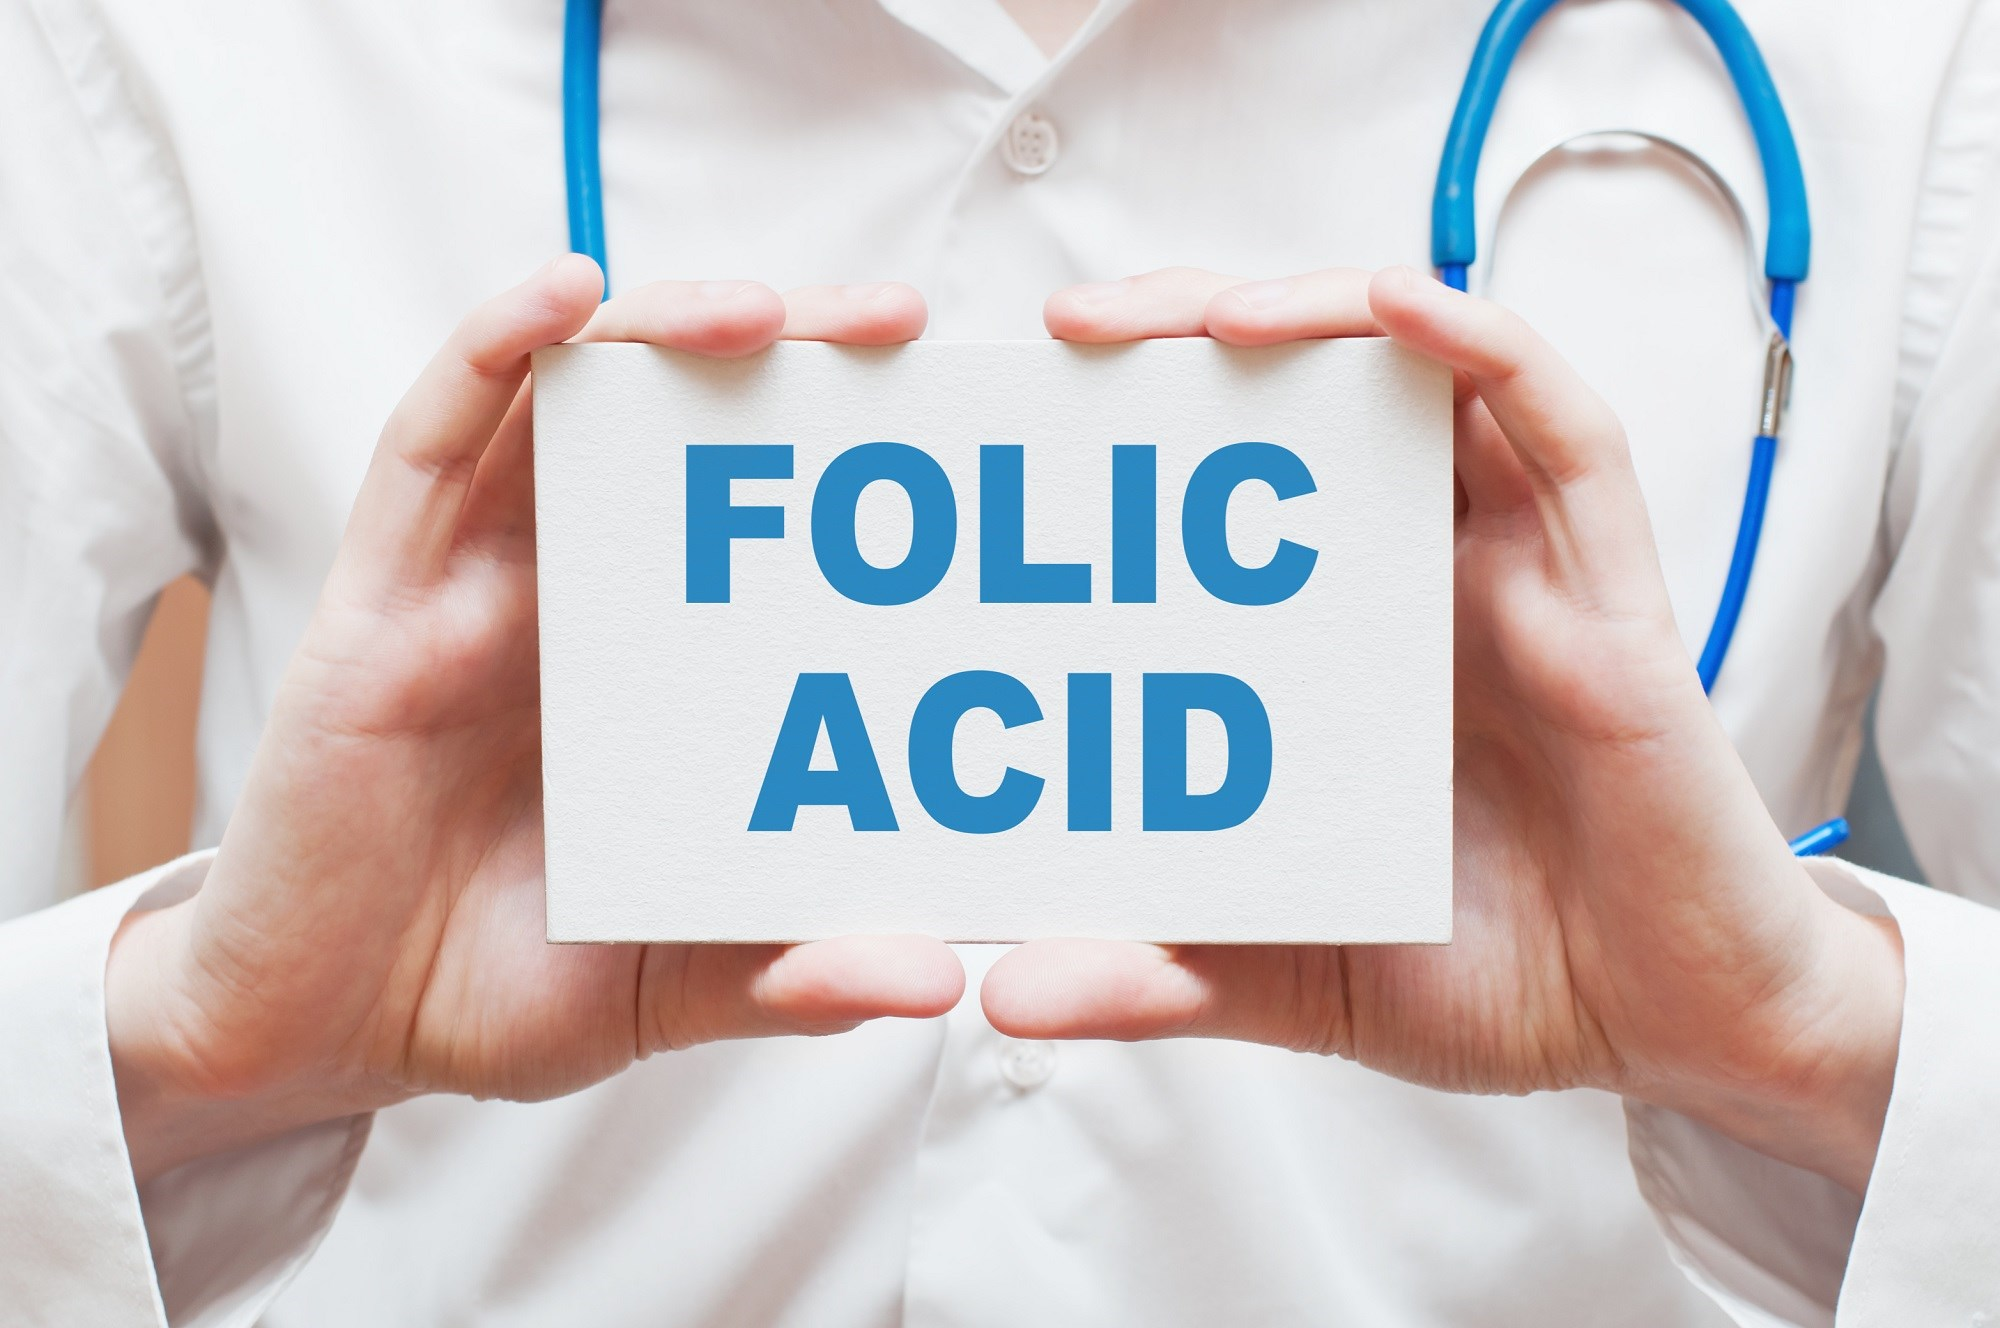 The United States government mandated that all grain products be fortified with folic acid by January 1, 1998.